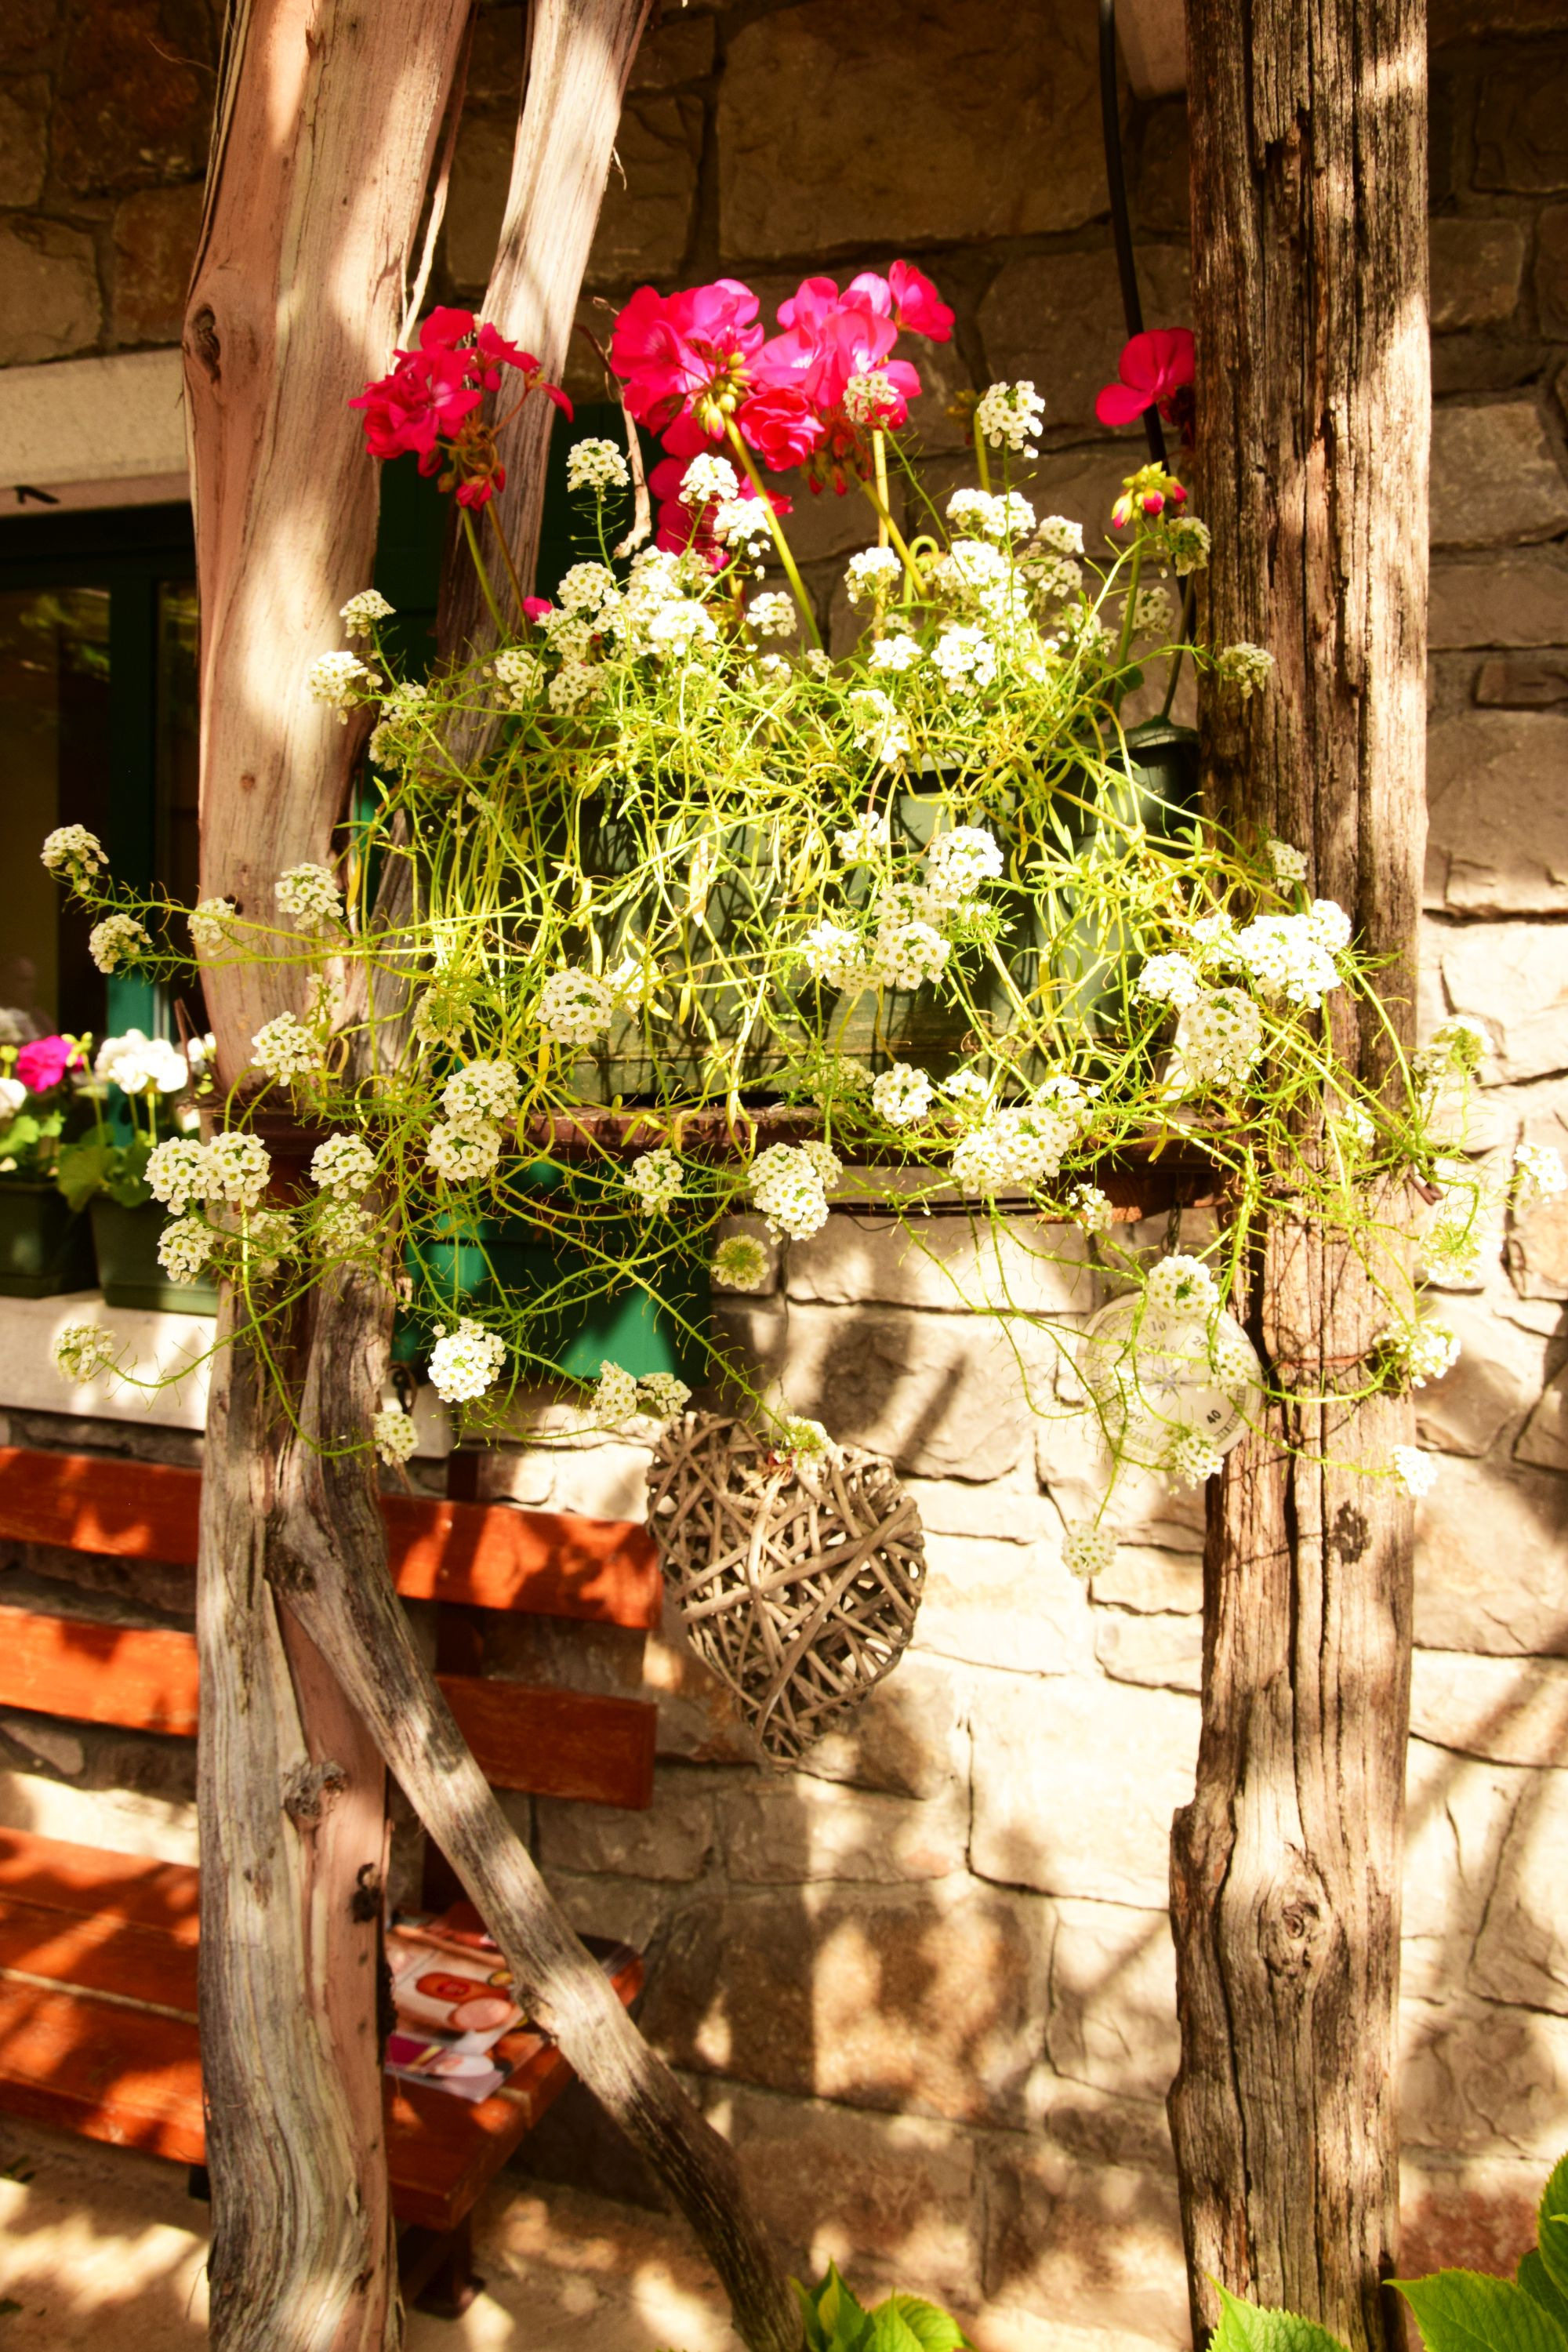 Flower display in a winery courtyard